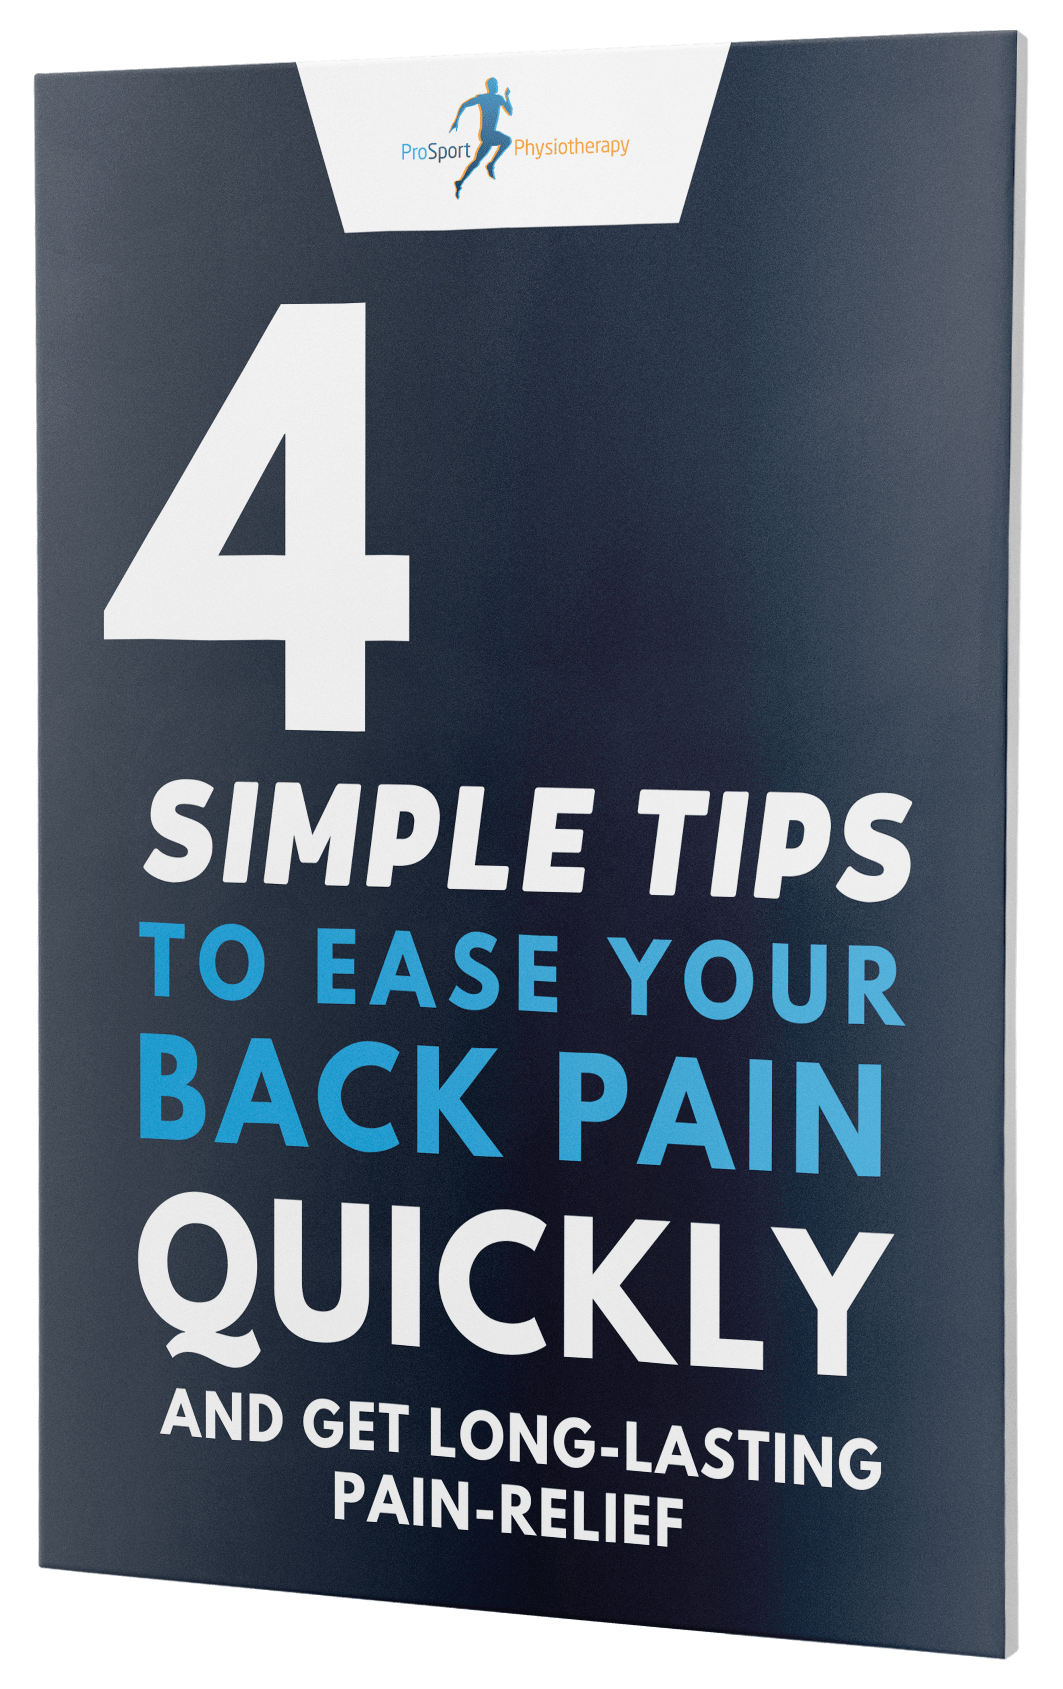 Back Pain Huddersfield Relief Tips PDF Guide - Pro Sport Physiotherapy Huddersfield Clinic